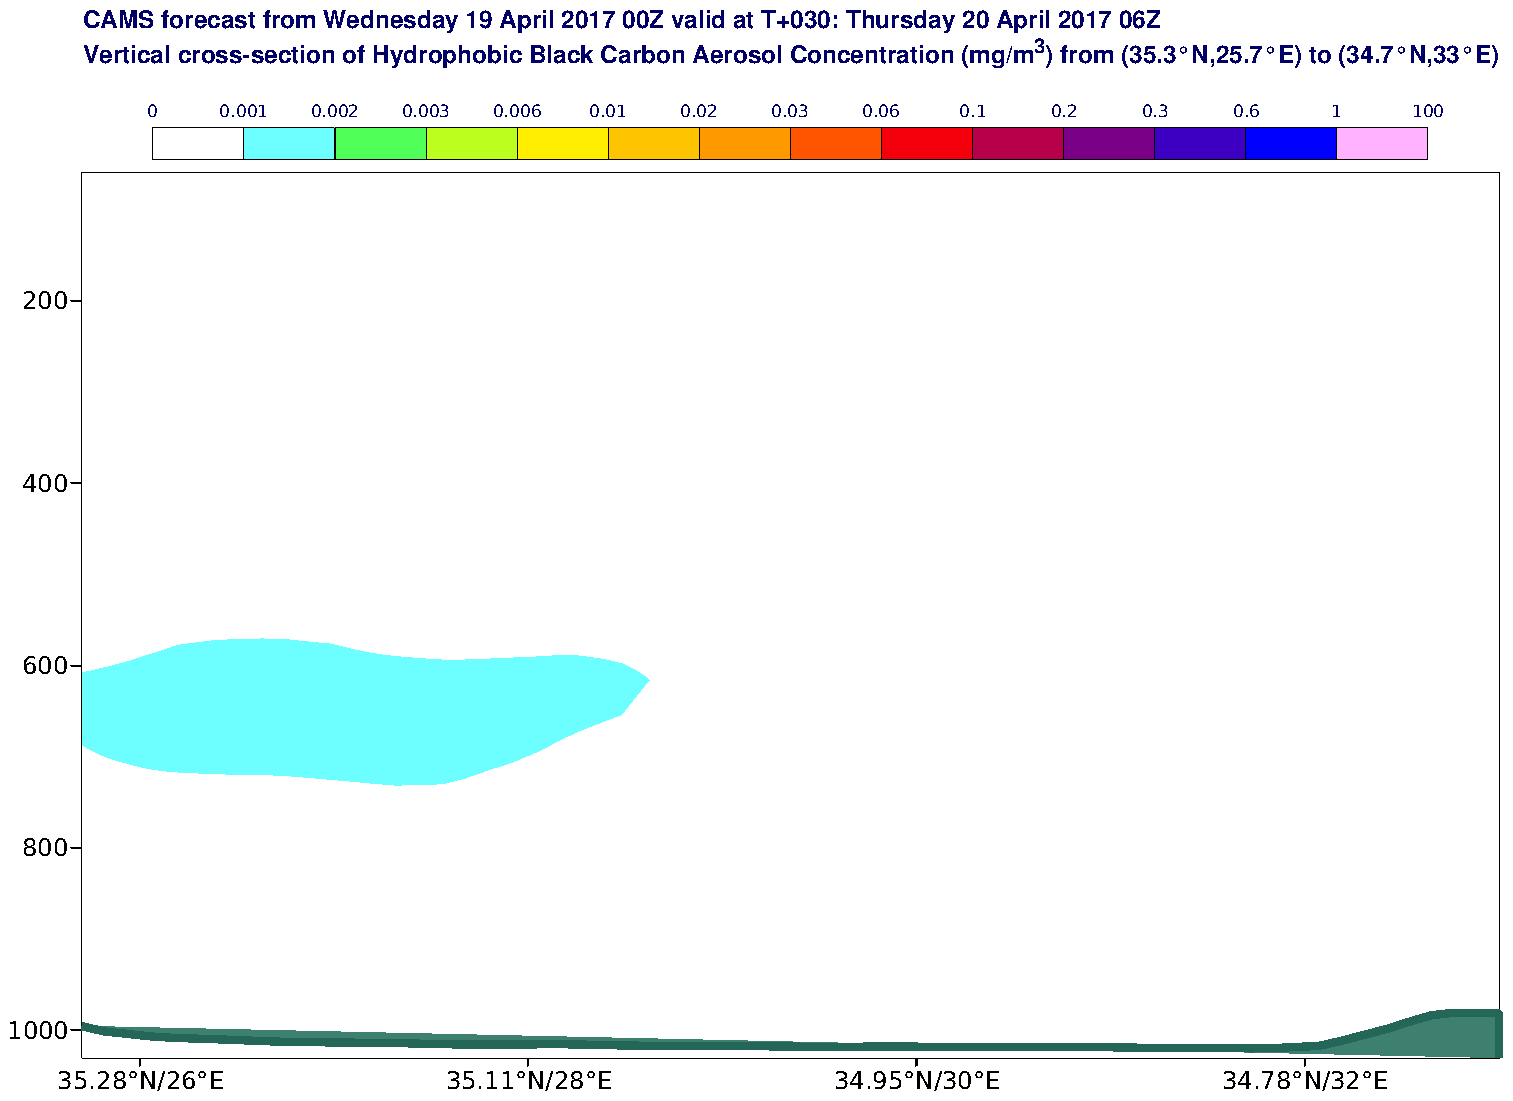 Vertical cross-section of Hydrophobic Black Carbon Aerosol Concentration (mg/m3) valid at T30 - 2017-04-20 06:00